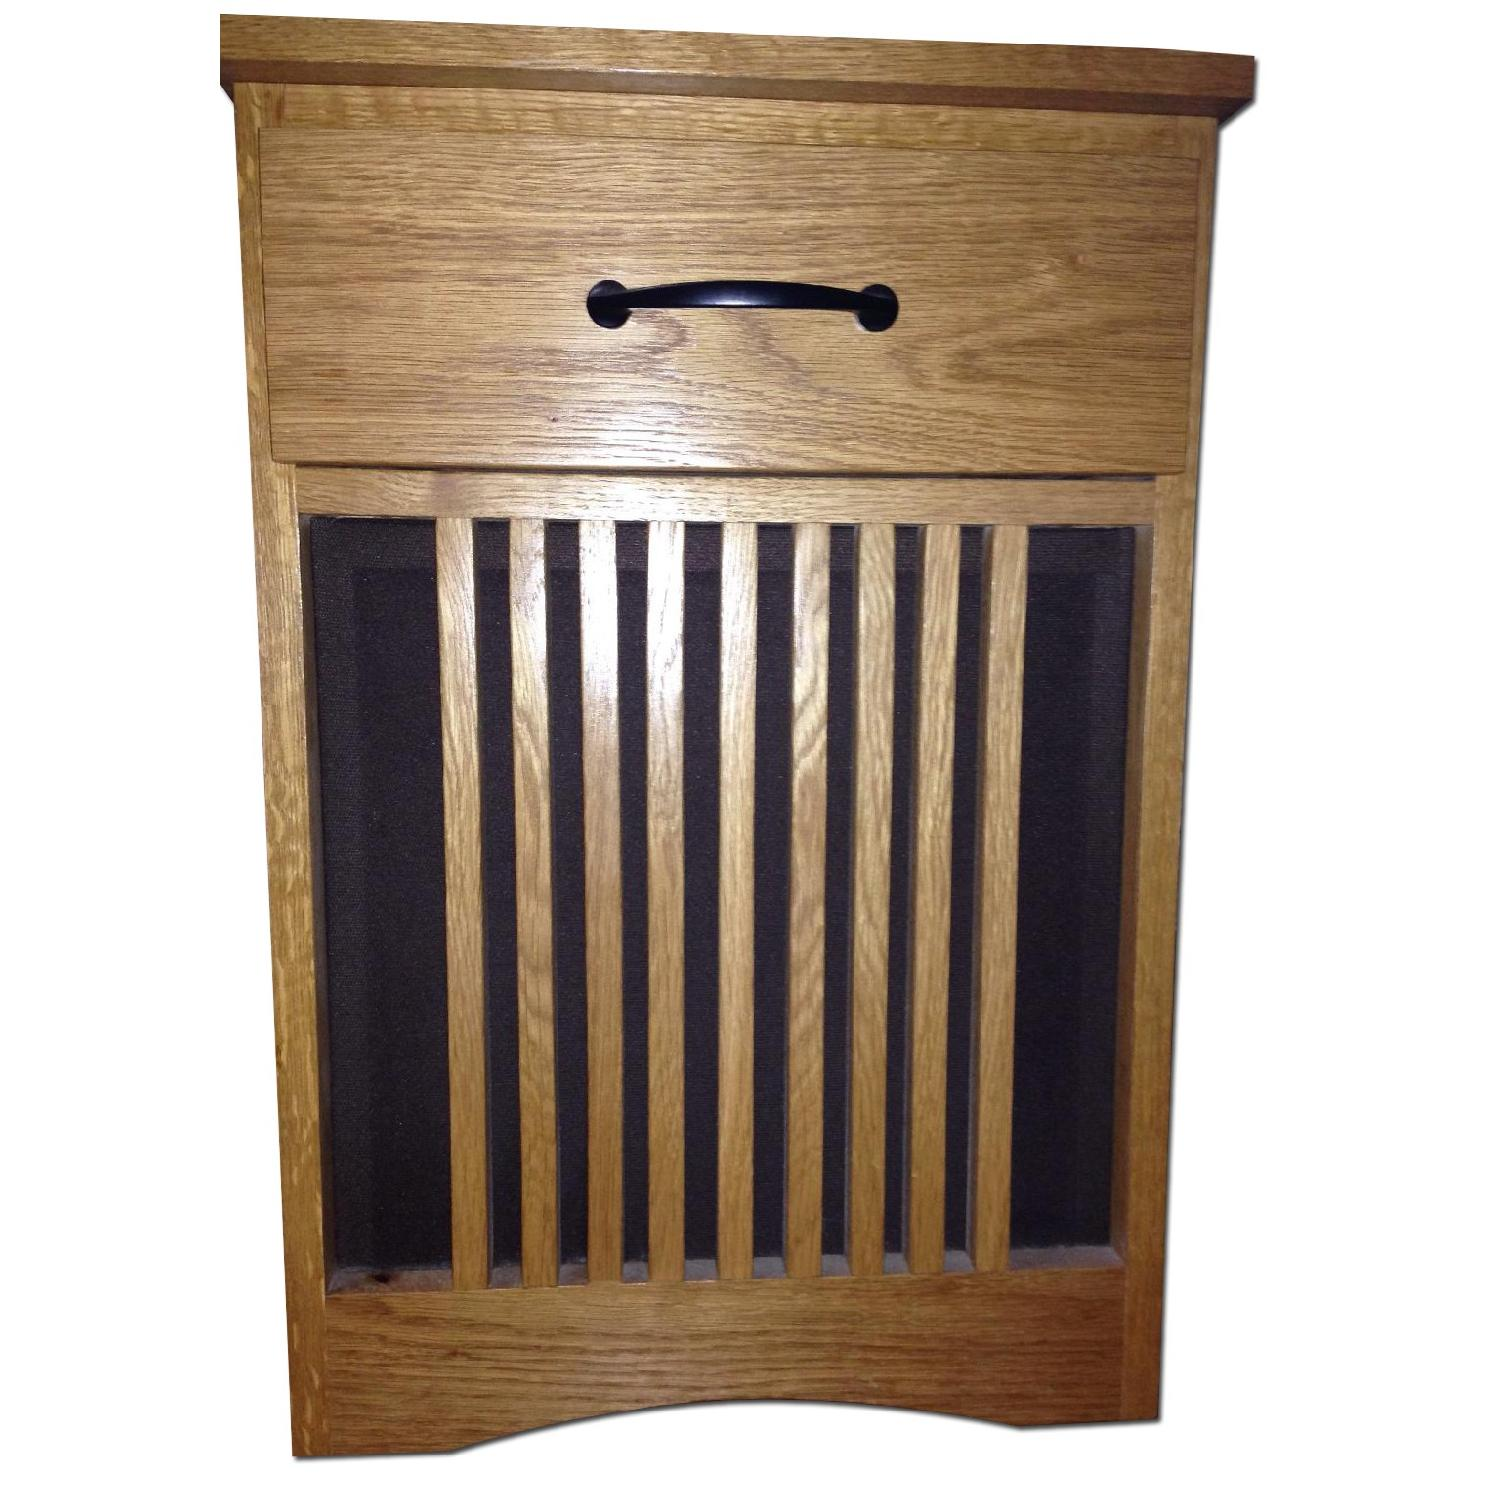 End Table w/ Subwoofer Cabinet - image-0